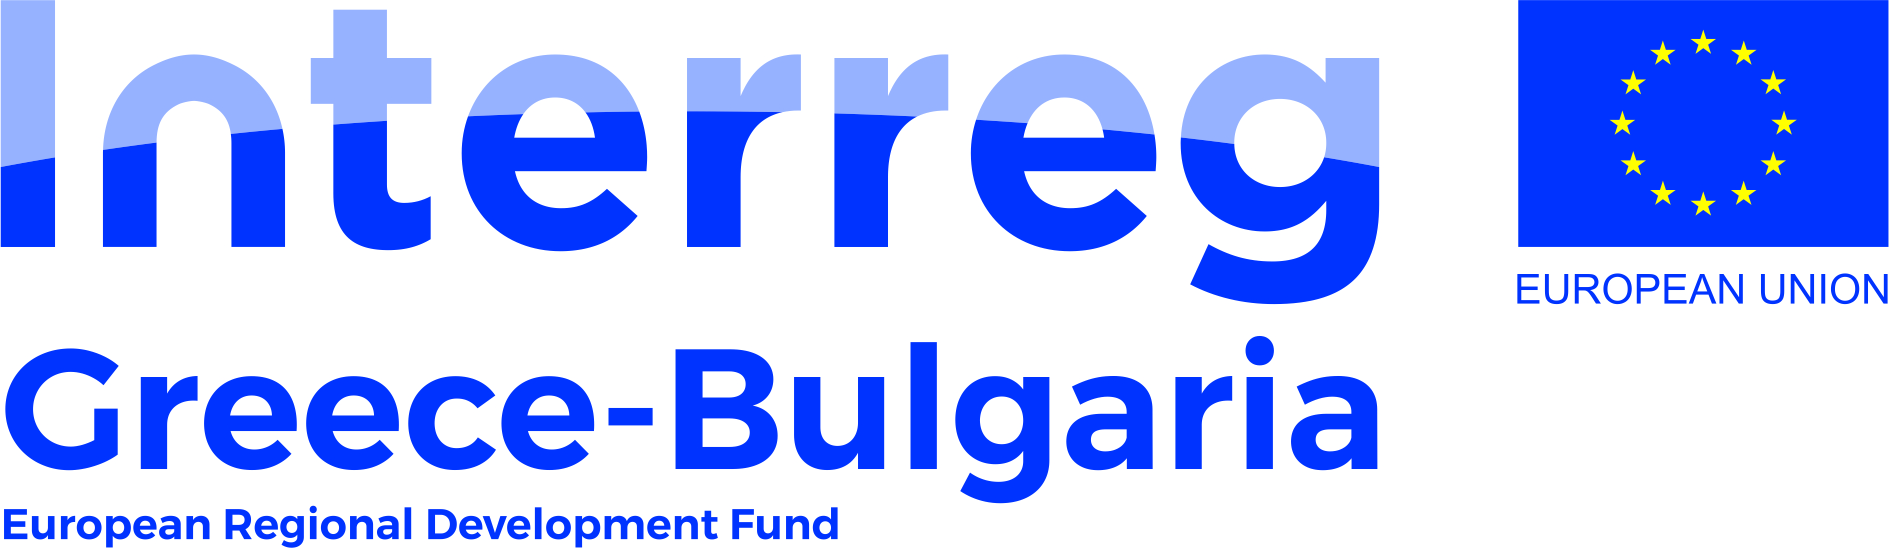 "A FEW WORDS ABOUT THE COOPERATION PROGRAMME ""GREECE-BULGARIA 2014-2020"""